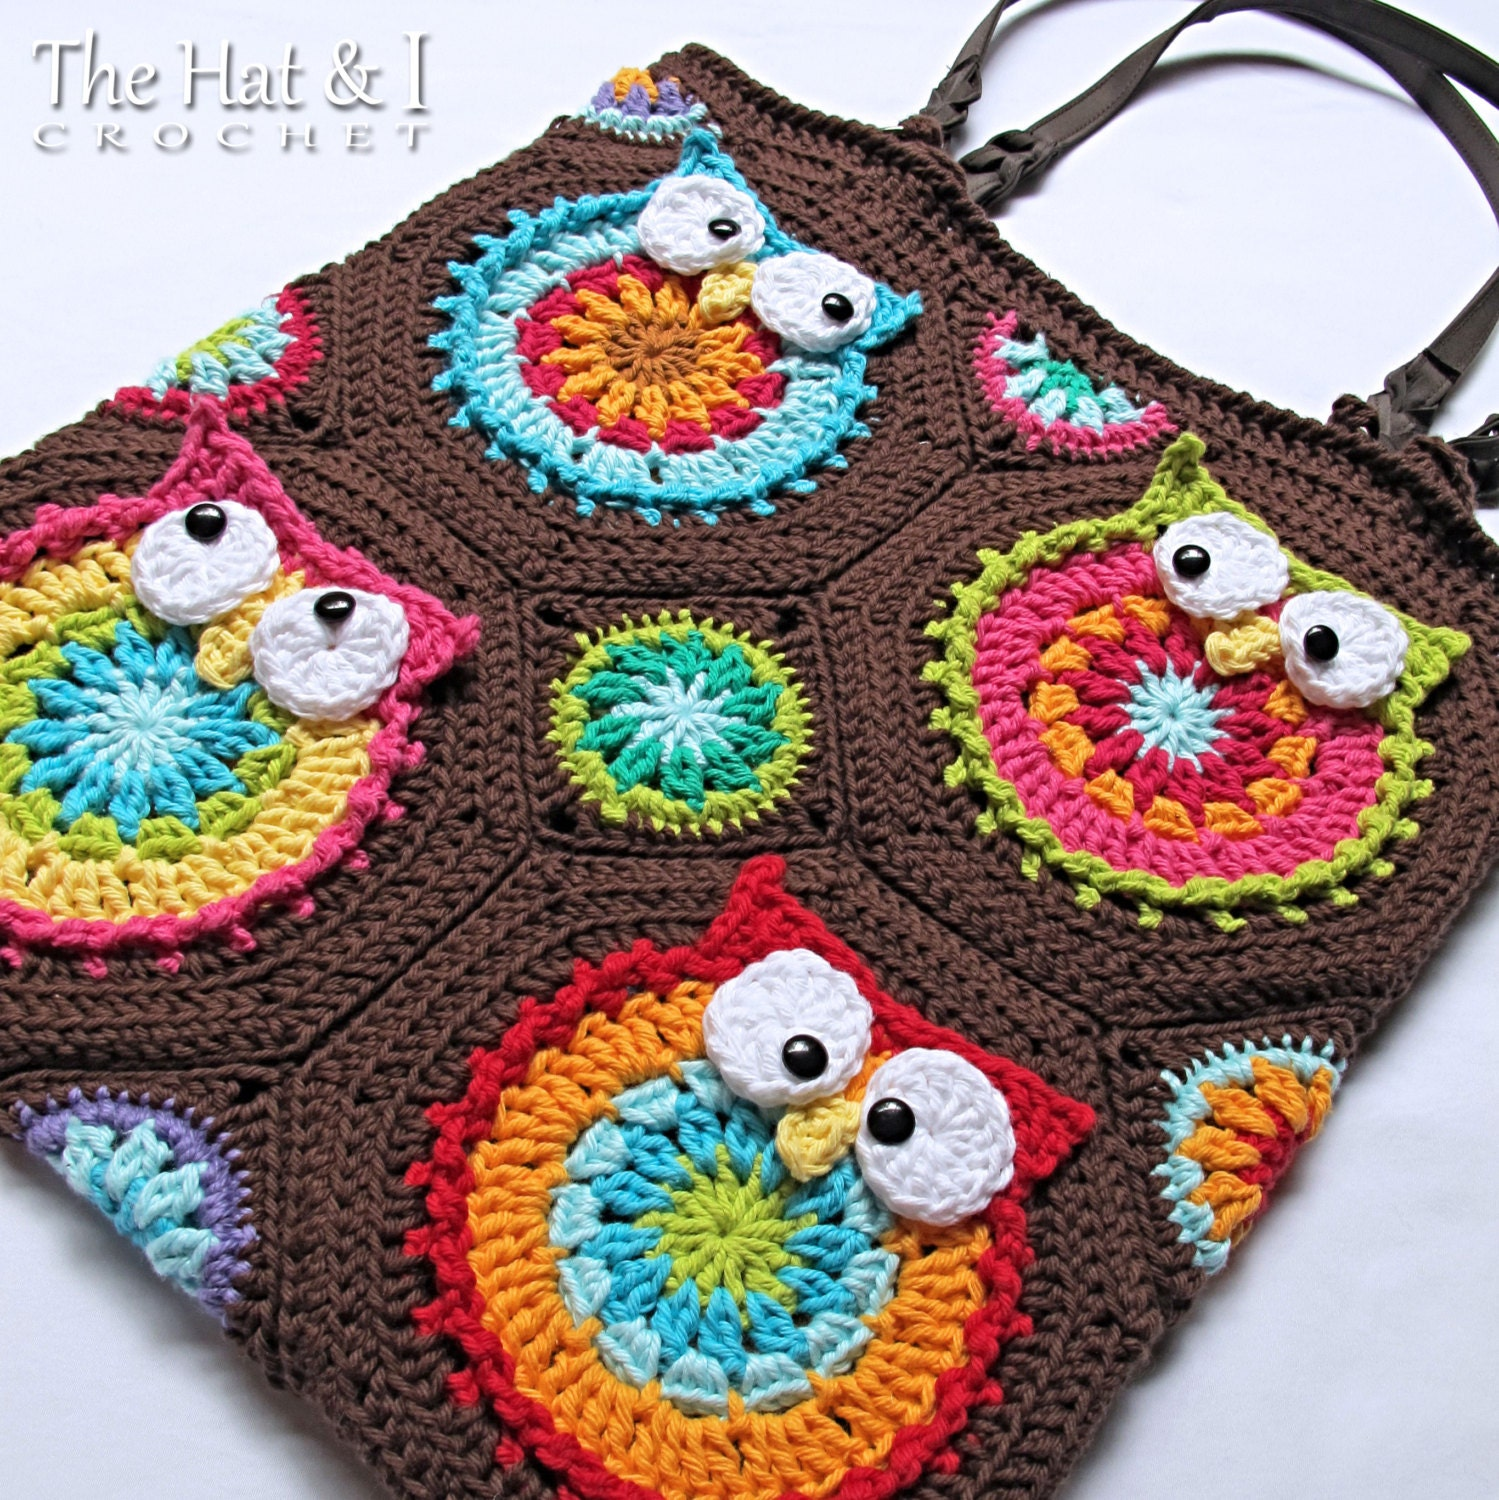 Crochet Owl Bag Pattern Free : CROCHET PATTERN Owl Toteem a colorful crochet owl by TheHatandI